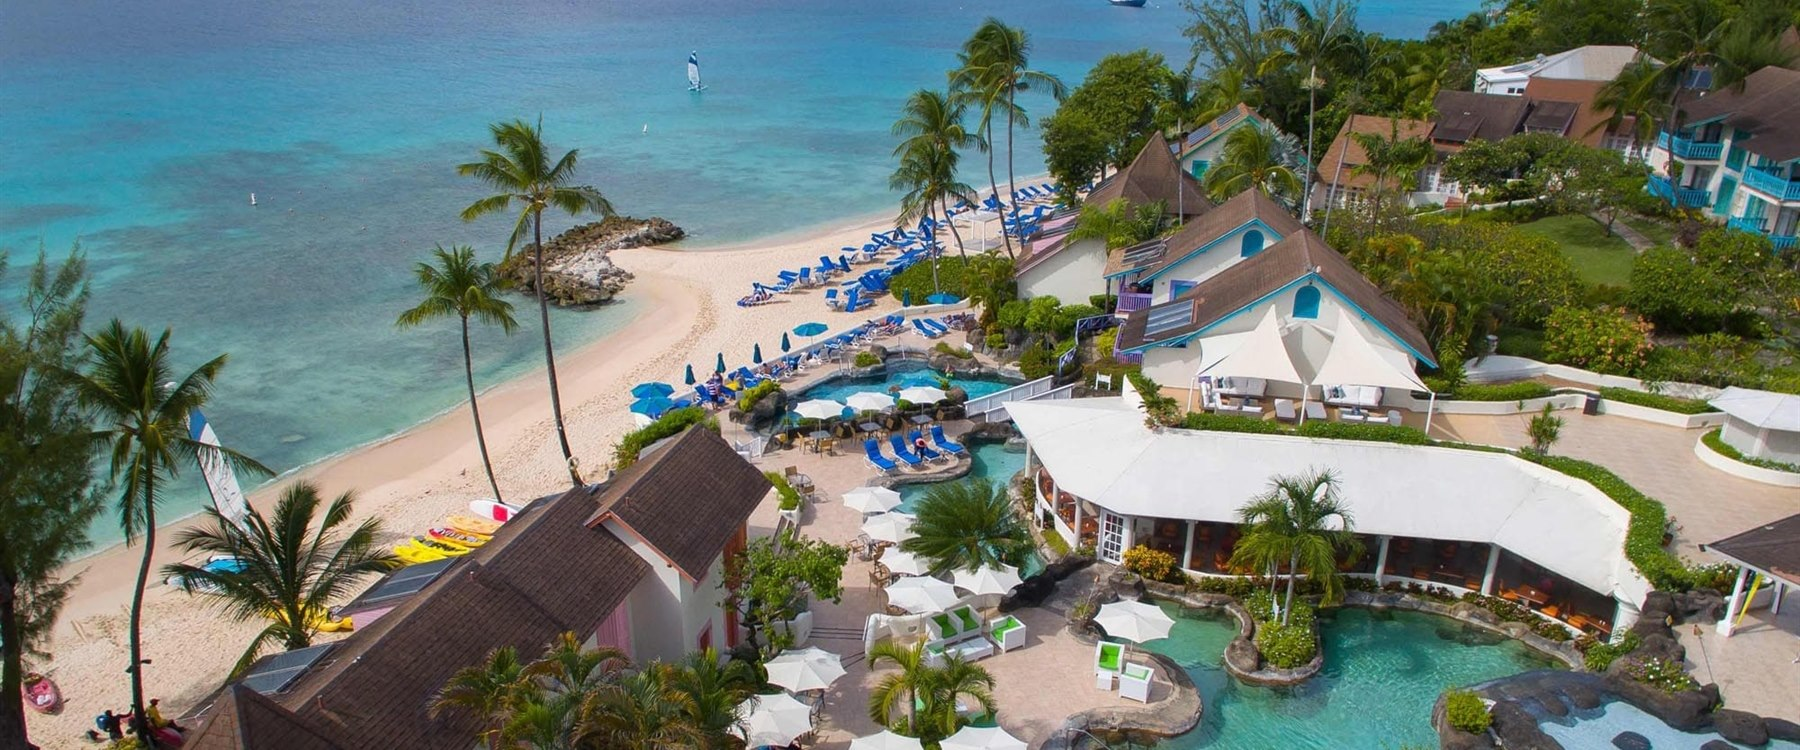 Beach at Crystal Cove by Elegant Hotels, Barbados